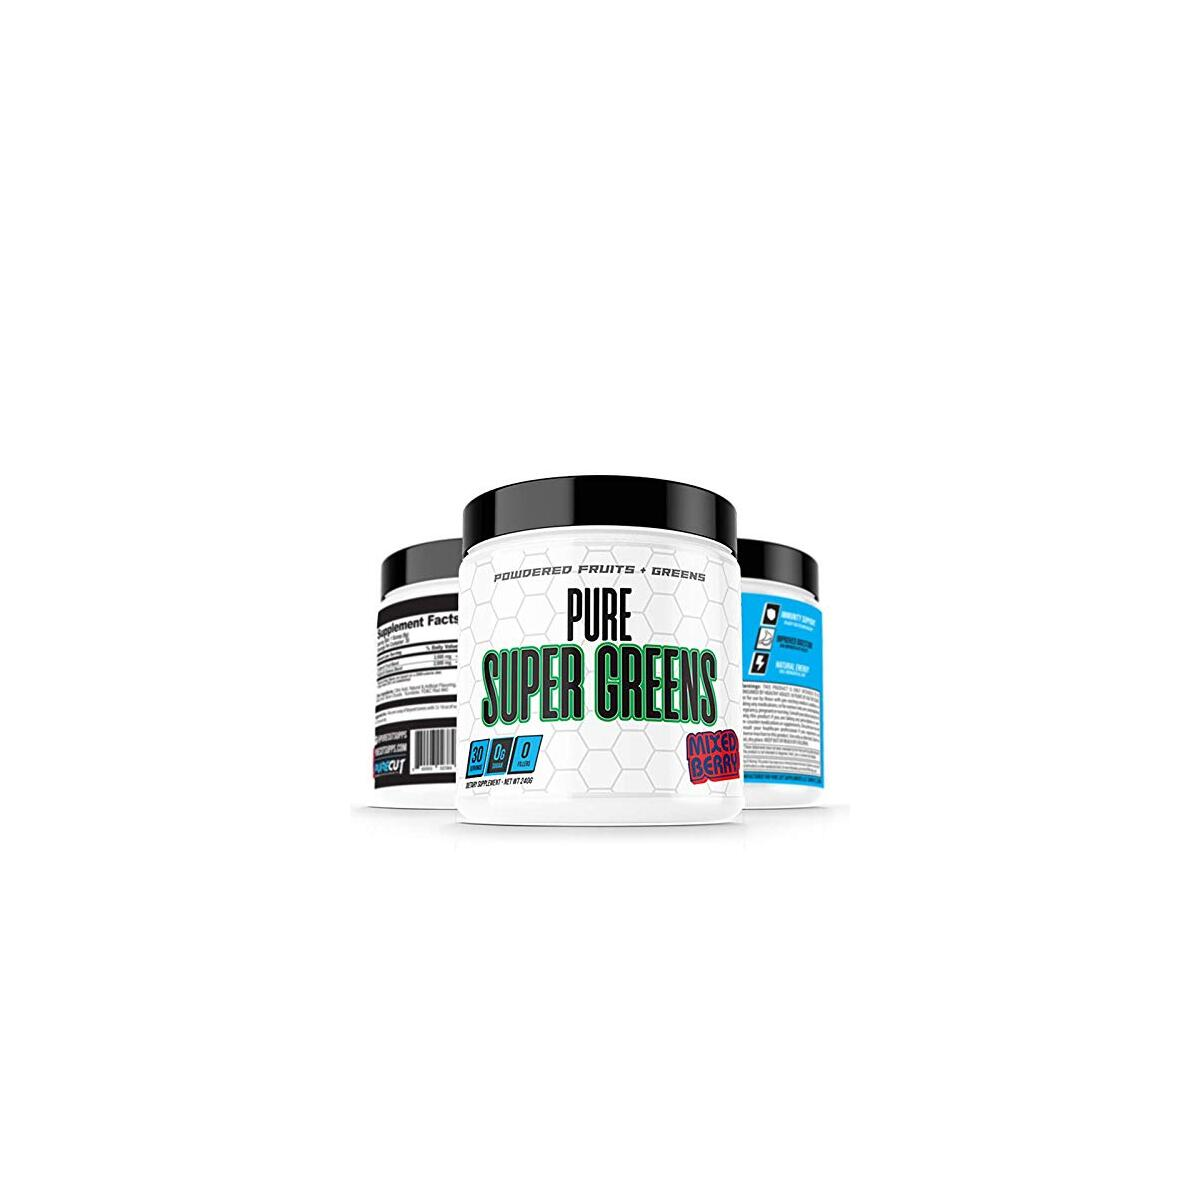 Pure Super Greens - Fruit & Greens Superfood